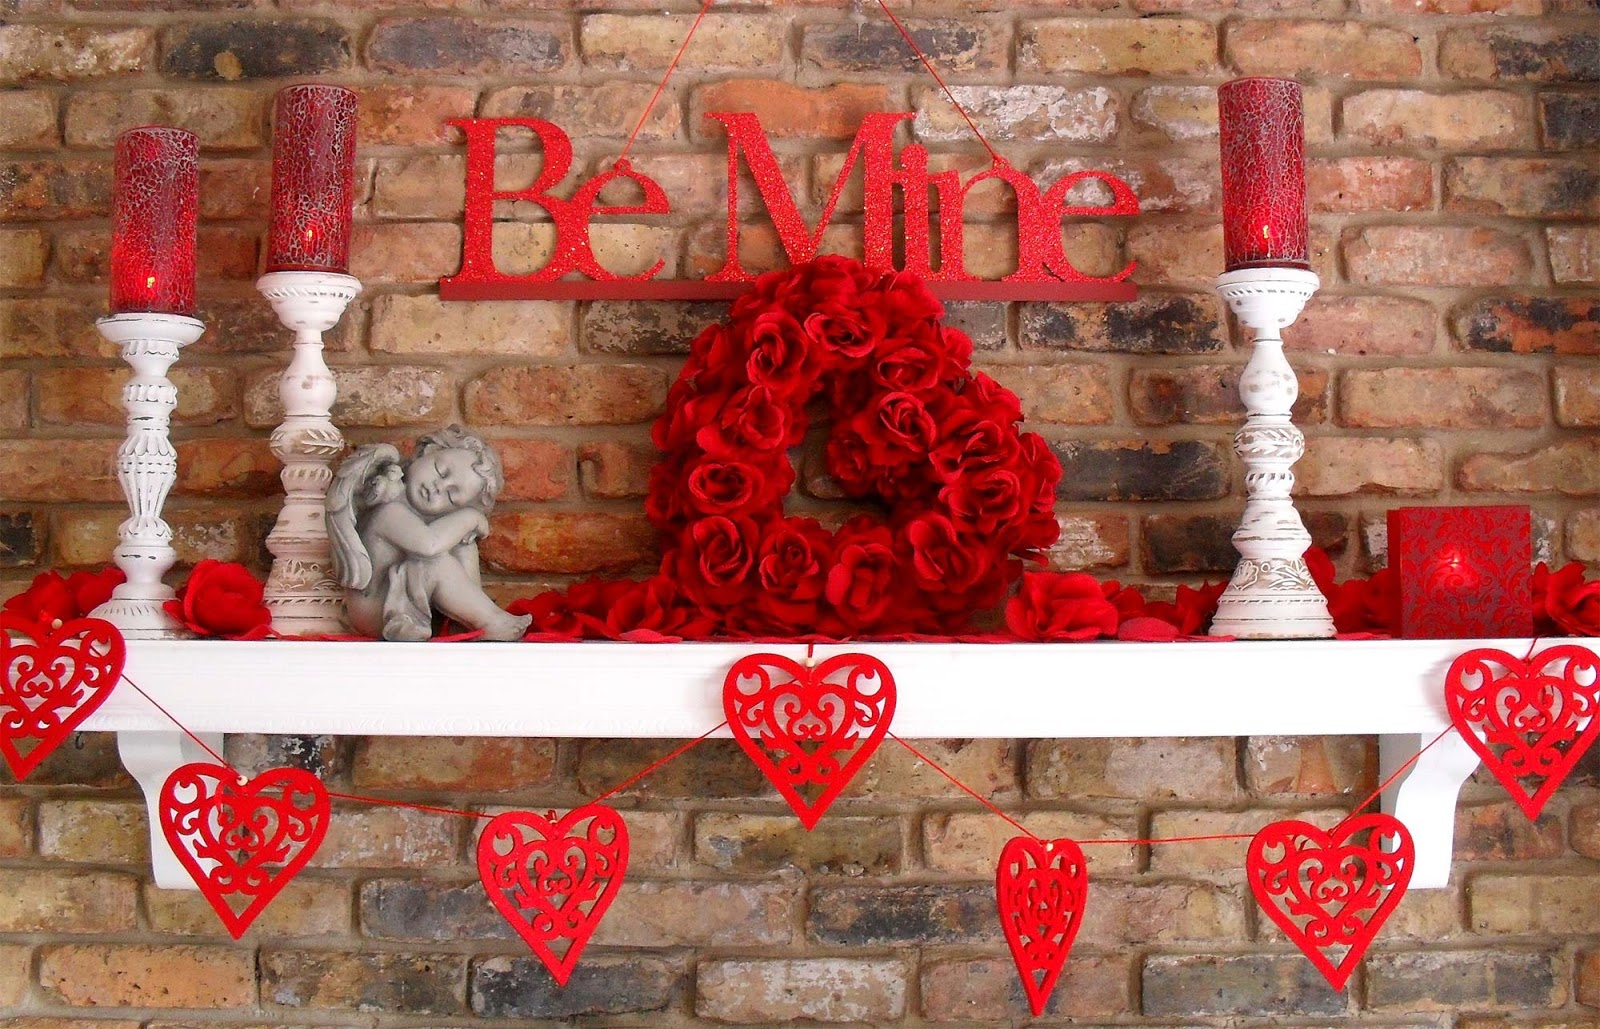 valentine's day decorations ideas 2013 to decorate bedroom ...